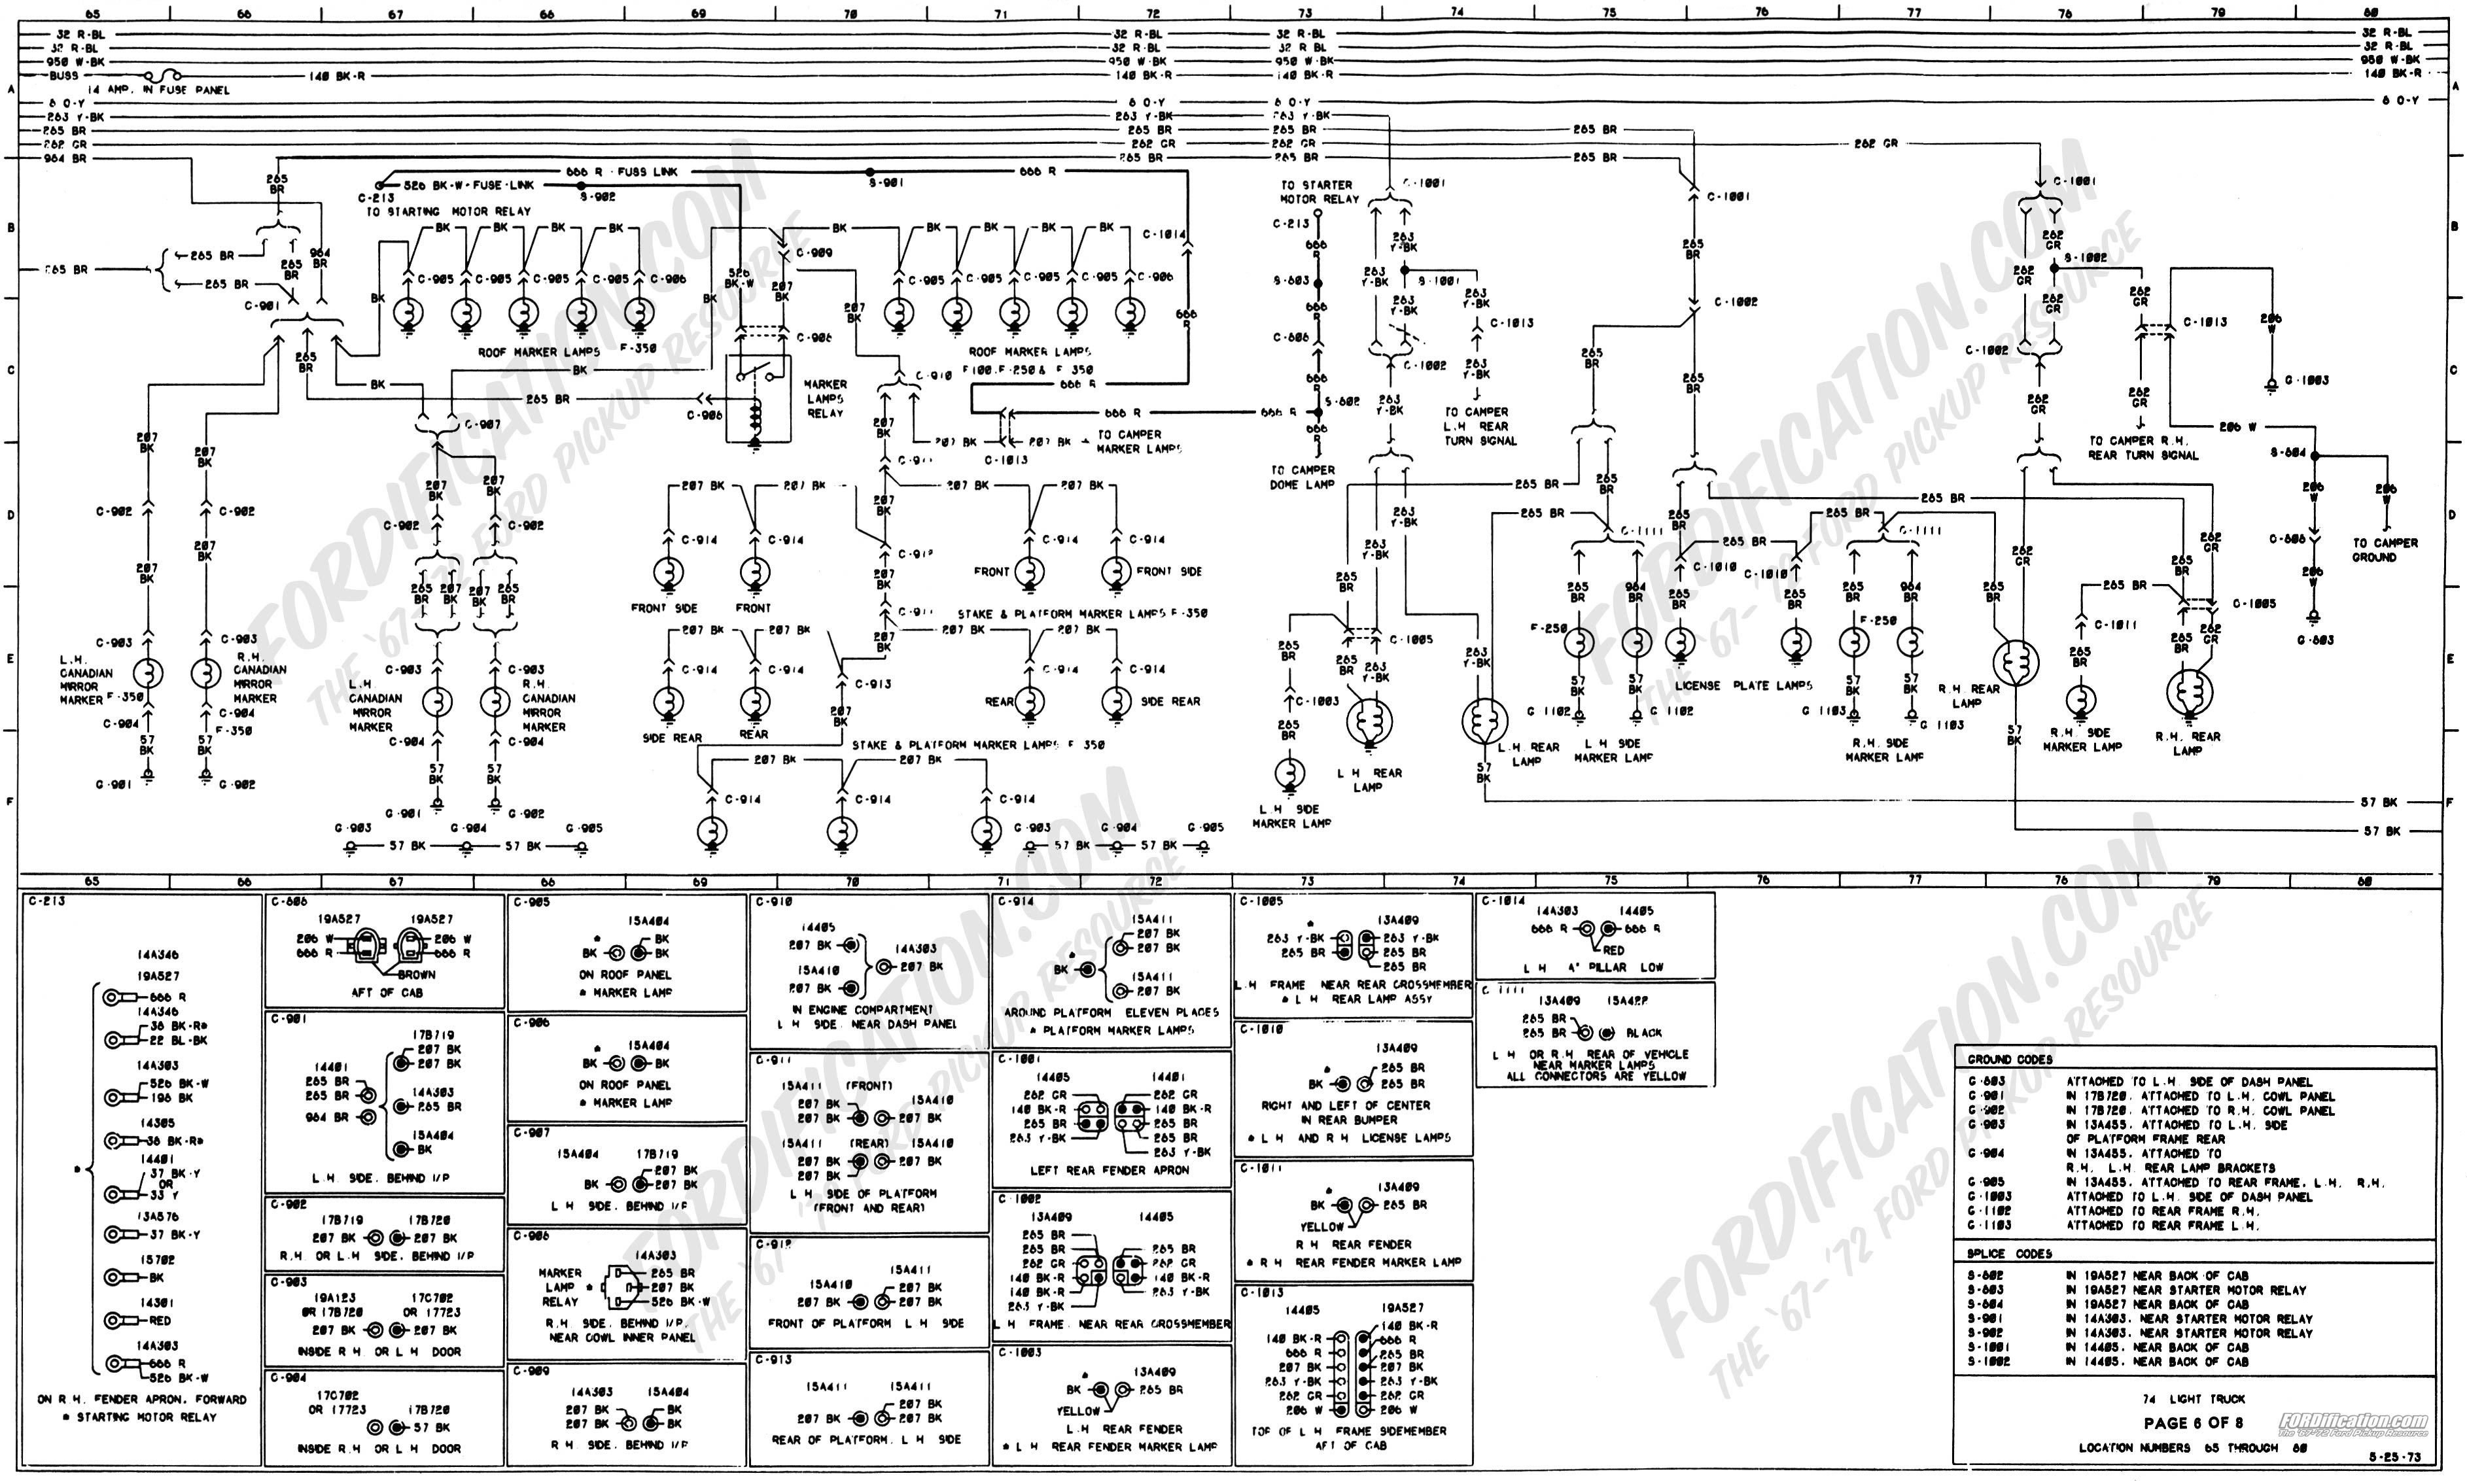 2015 Ford F350 Wiring Diagram | Wiring Diagram - 2015 F150 Trailer Wiring Diagram